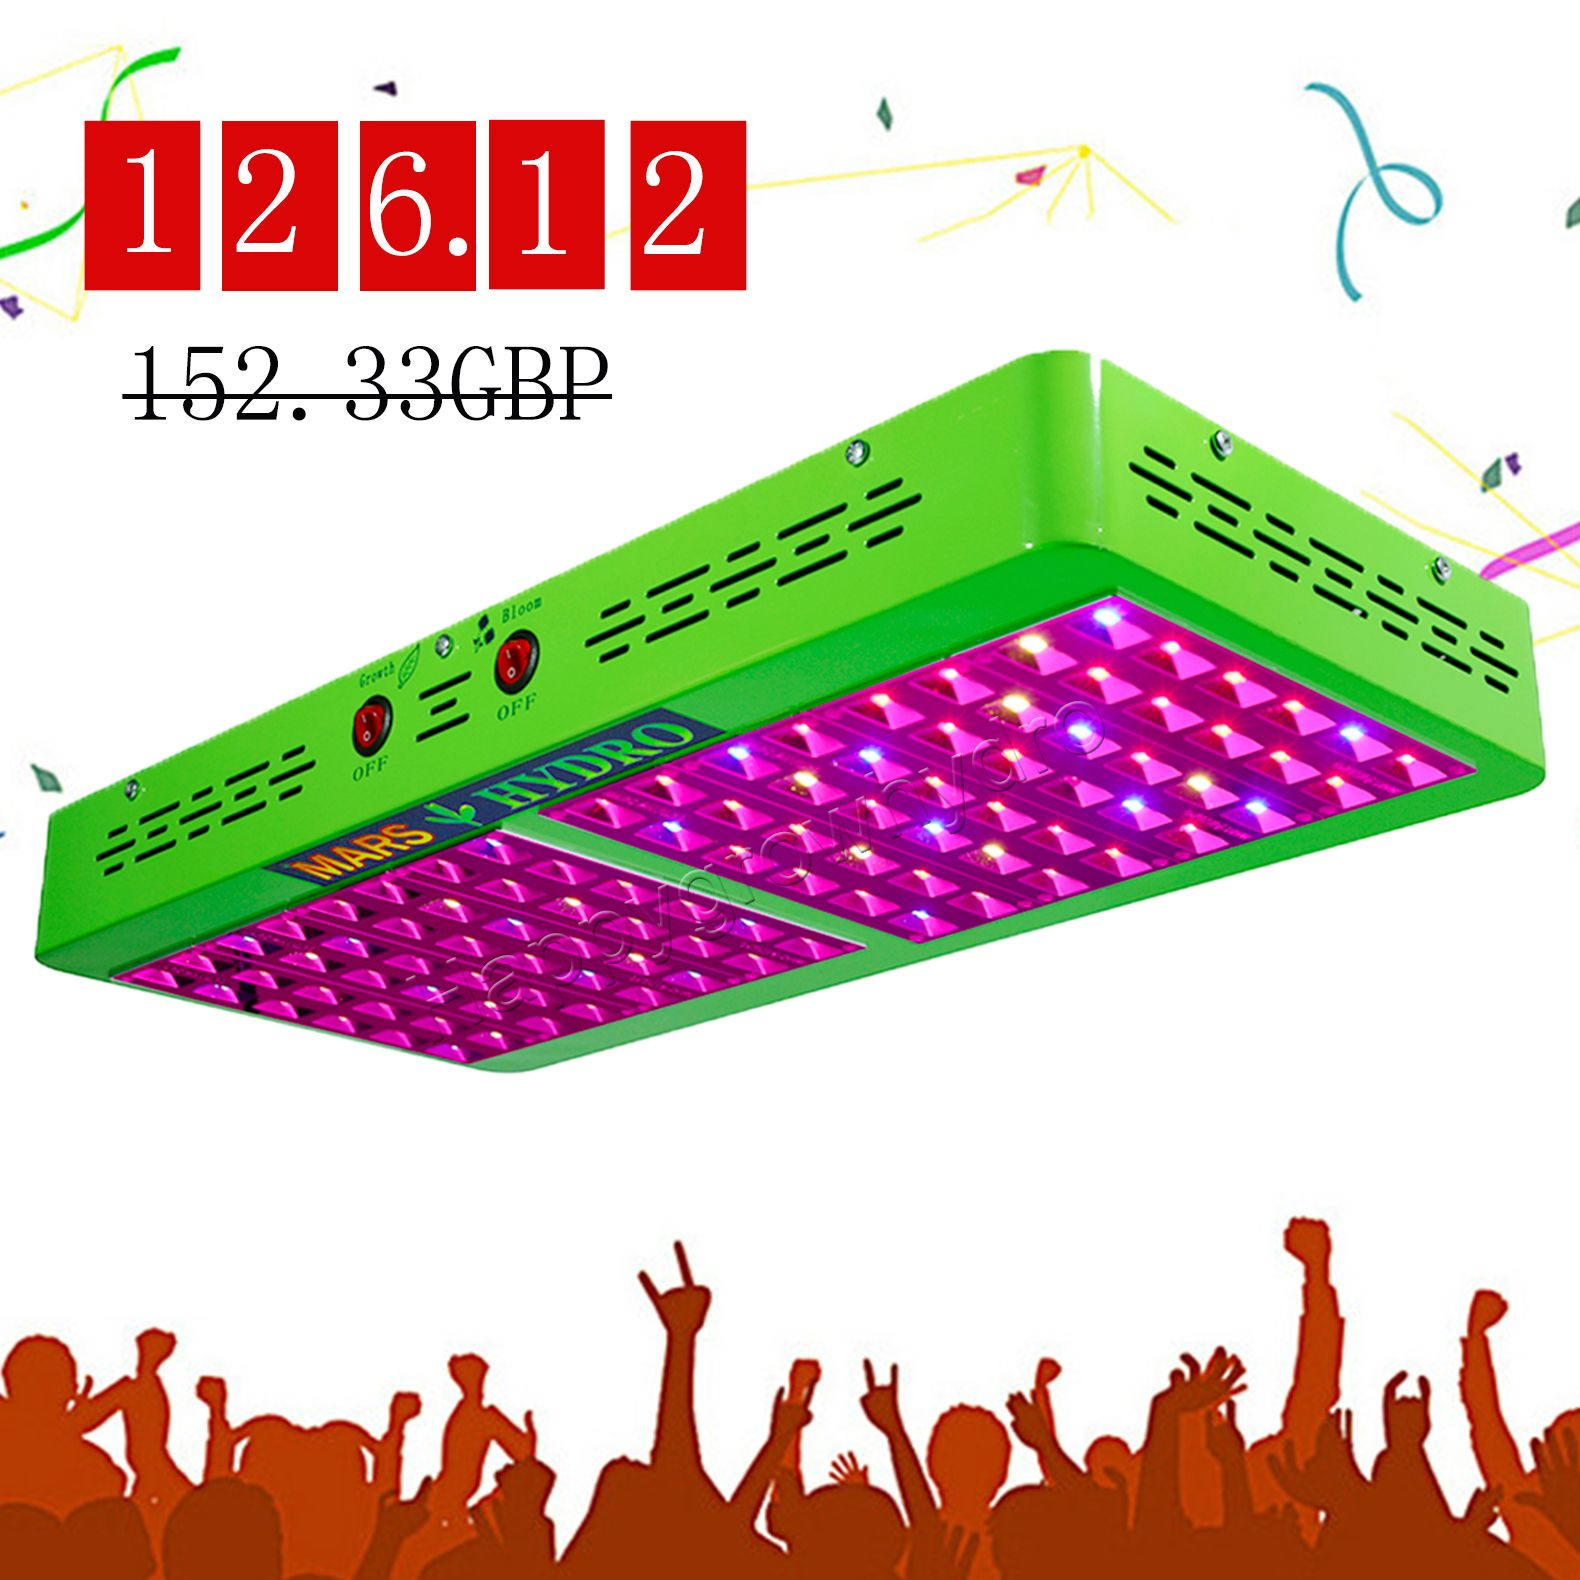 Bestva 300w 600w 800w 1000w 1200w 1500w 1800w 2000w Full Spectrum Led Grow Light For Indoor Plants Grow Led L Led Grow Lights Growing Plants Indoors Led Lights